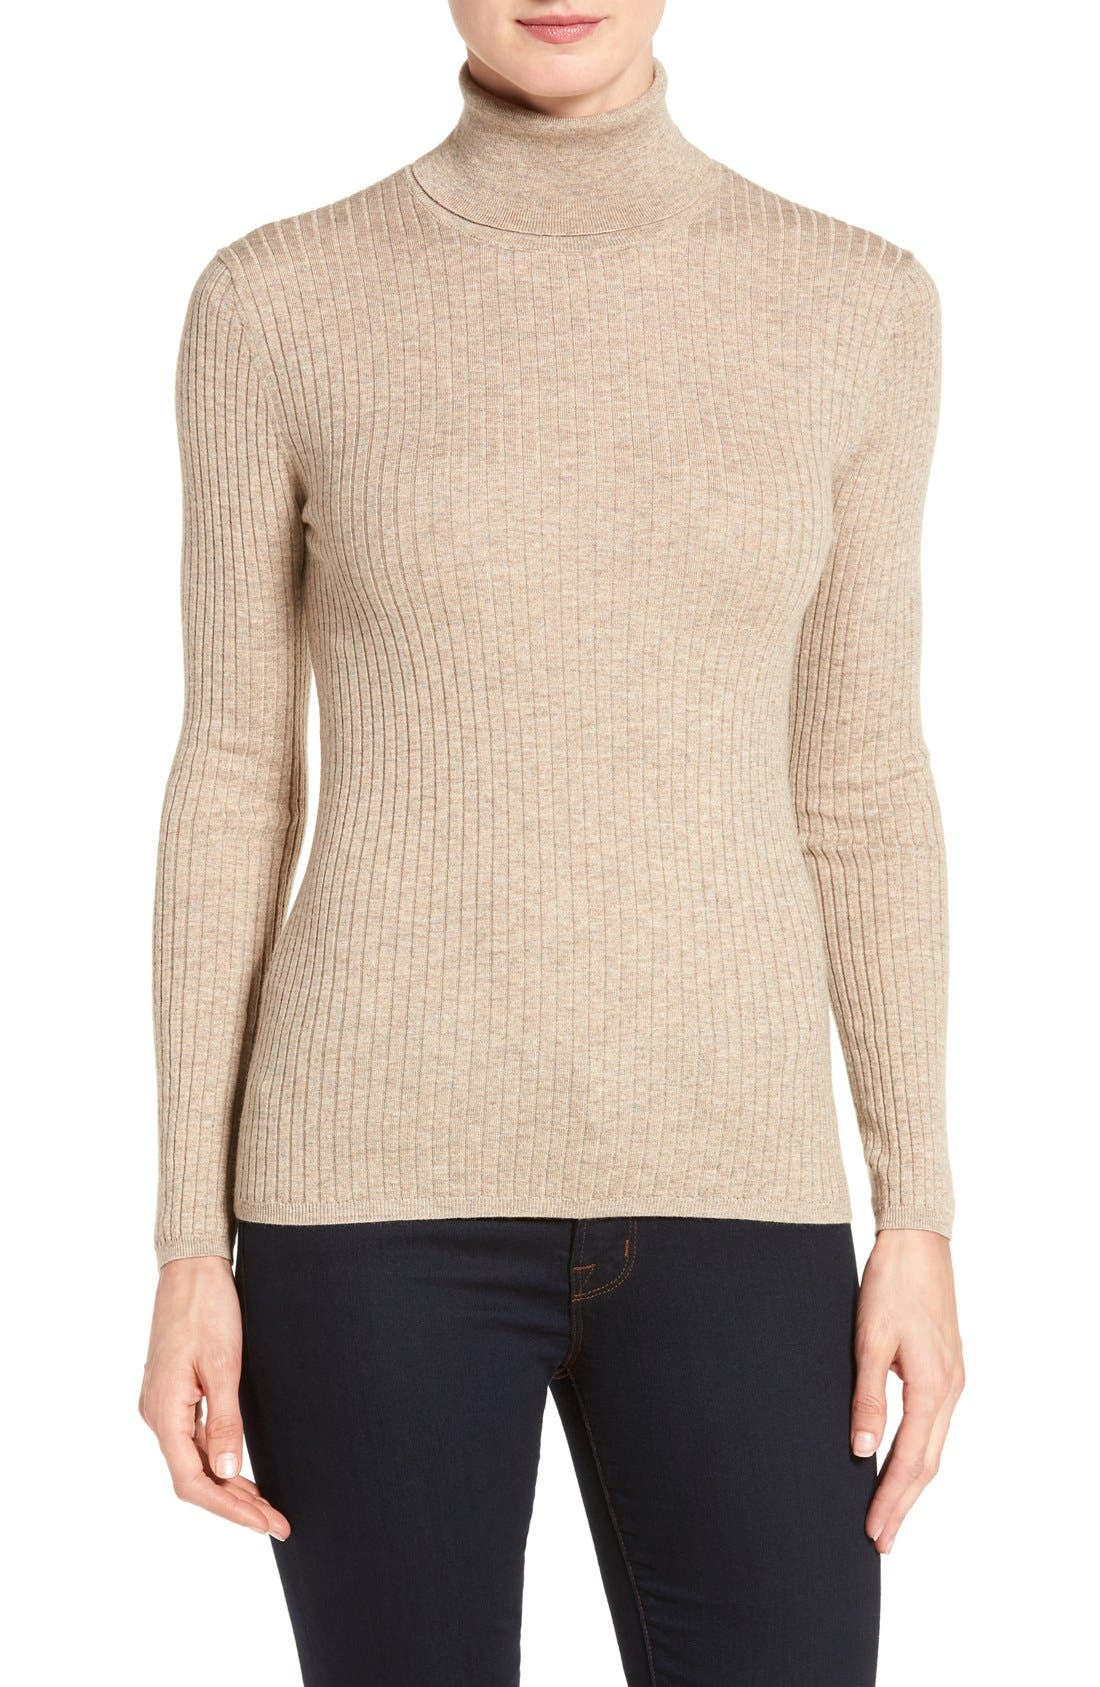 Alternate Image 1 Selected - Classiques Entier® Ribbed Turtleneck Sweater (Regular & Petite)